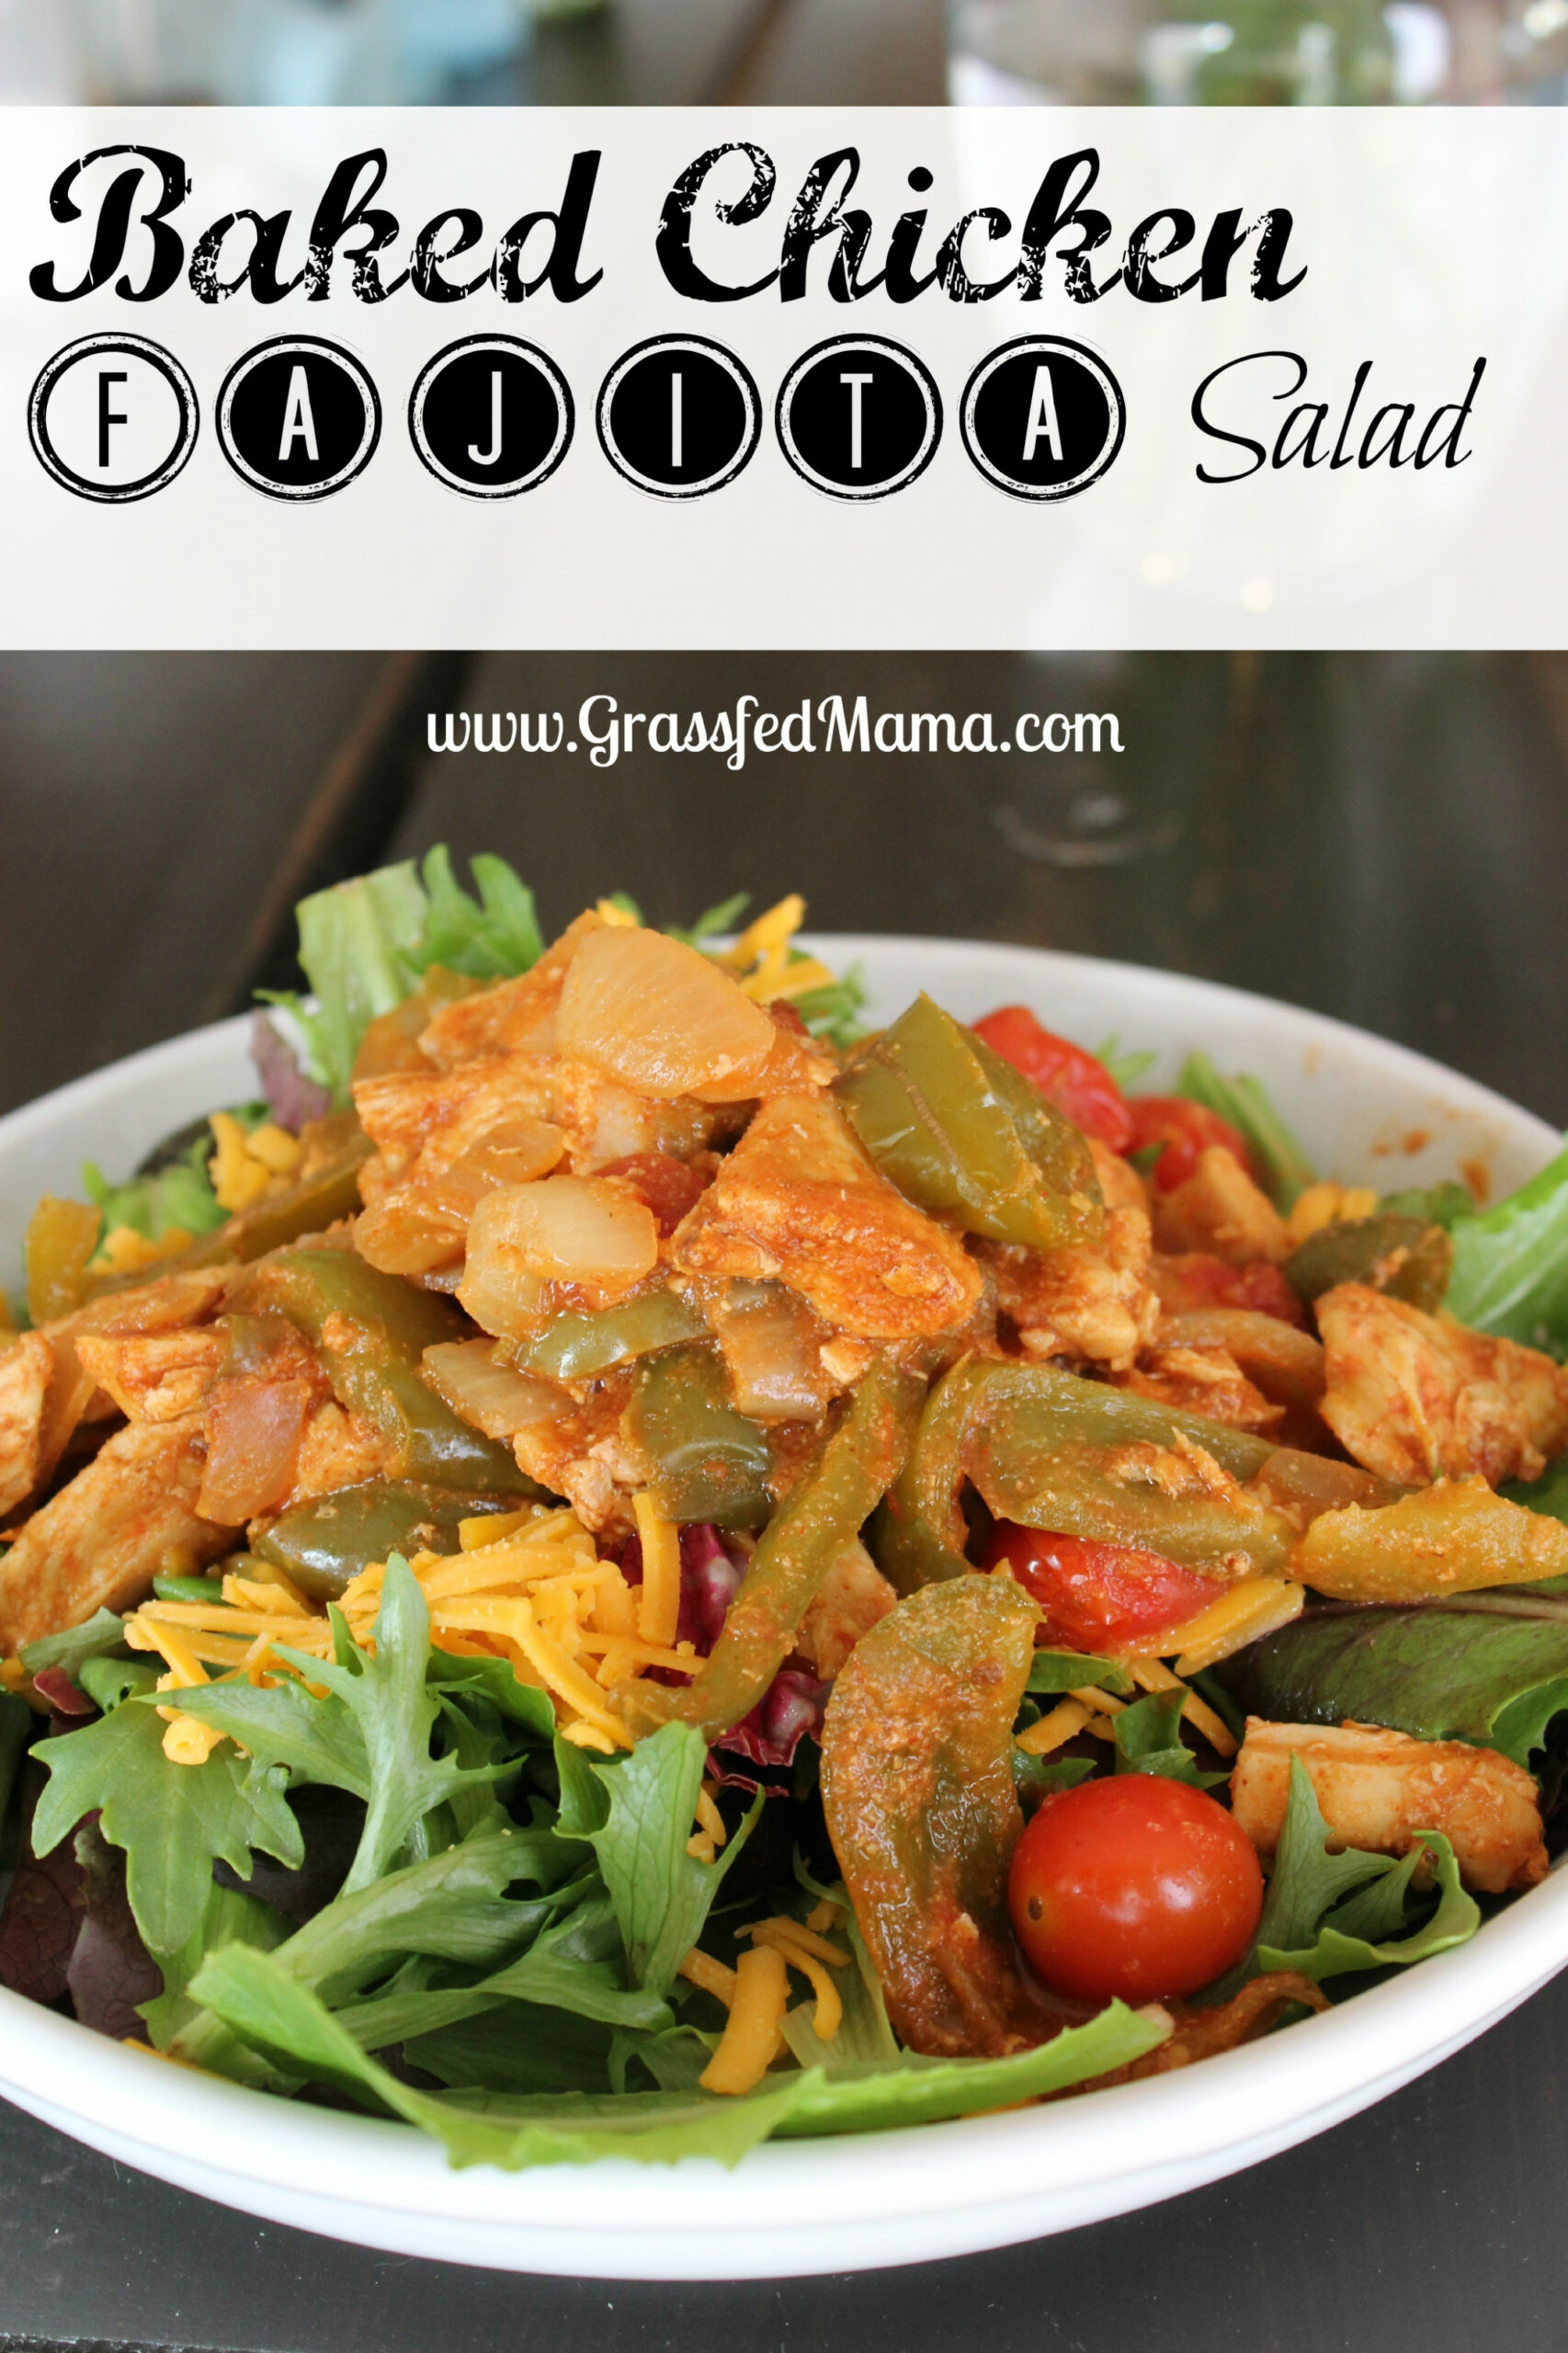 Easy Baked Chicken Fajita Salad - Grassfed Mama - dinner recipes gestational diabetes